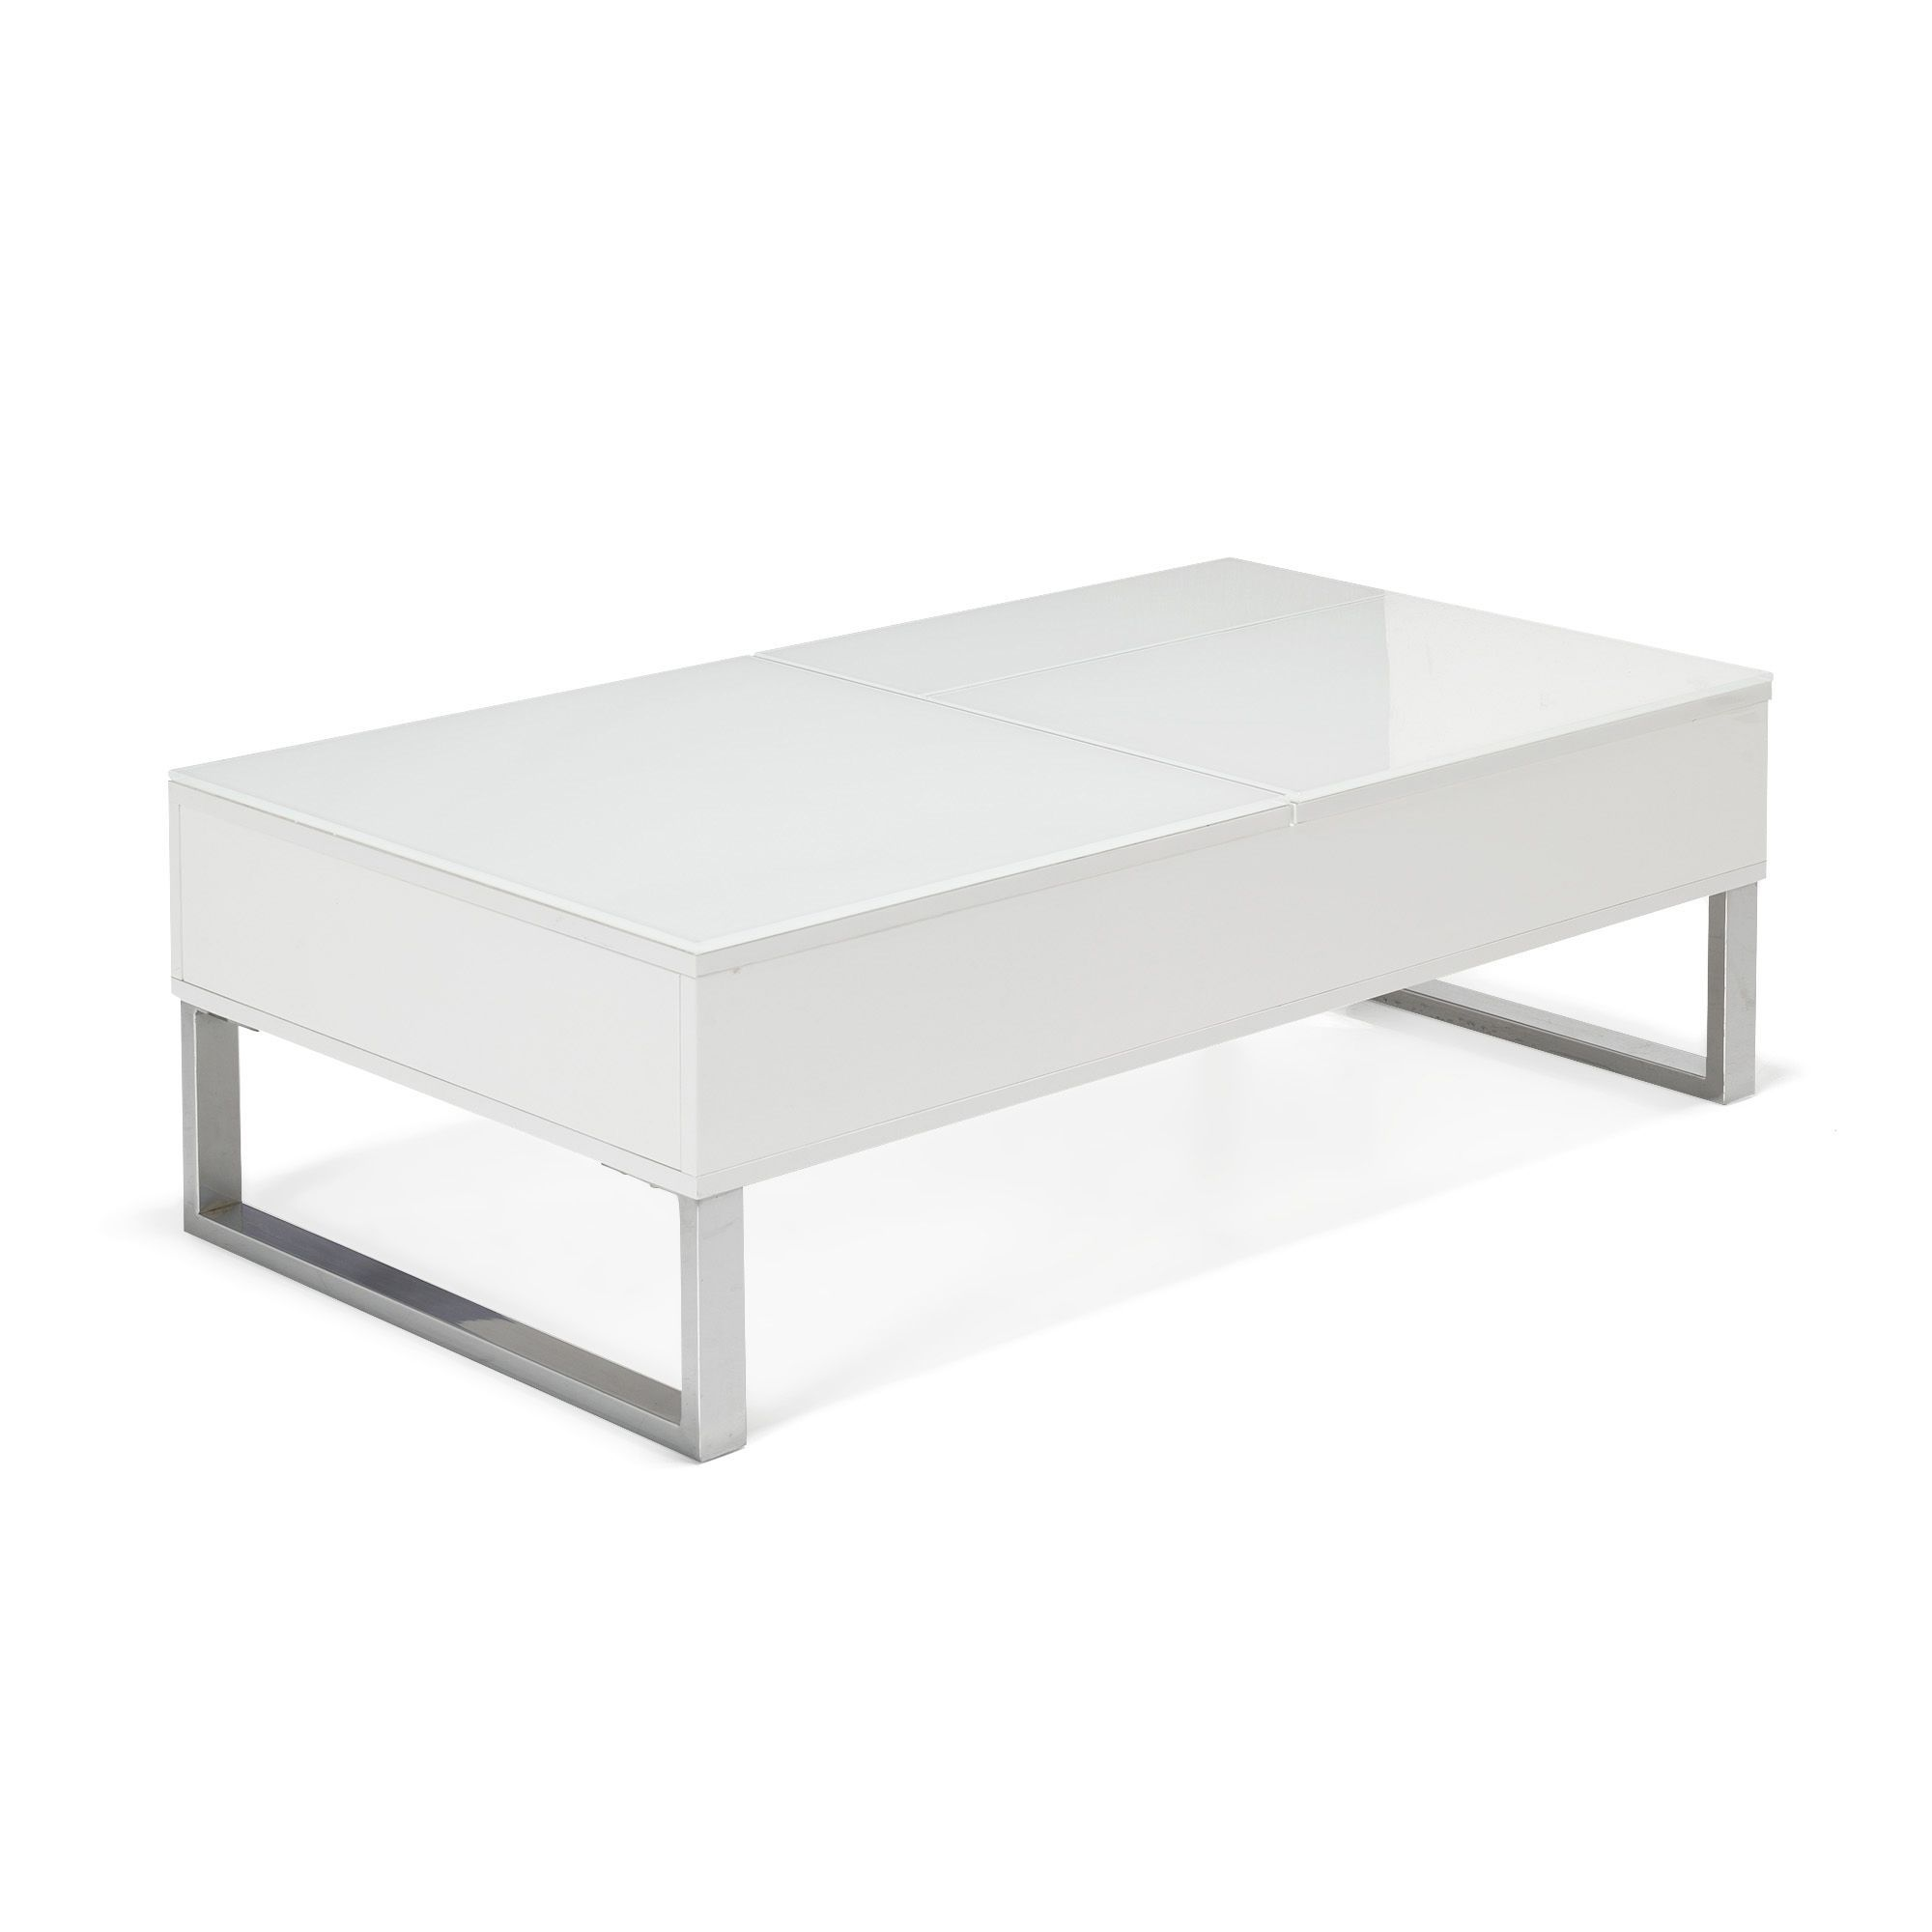 table basse avec tablettes relevables blanc kandis les tables basses tables basses et. Black Bedroom Furniture Sets. Home Design Ideas